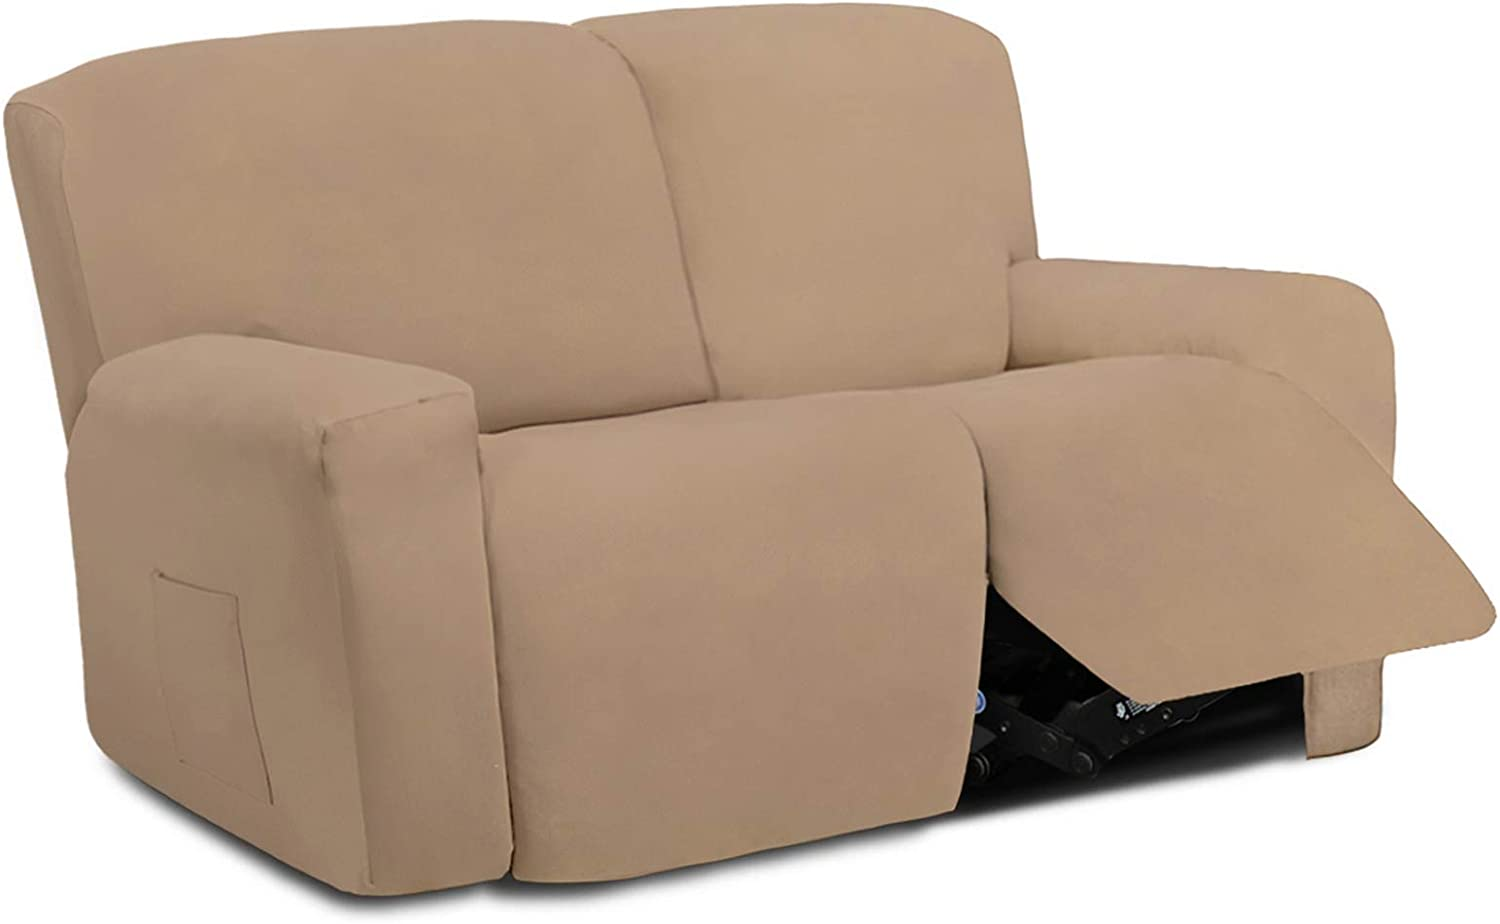 Easy-Going 6 Pieces Microfiber Stretch Sectional Recliner Sofa Slipcover Soft Fitted Fleece 2 Seats Couch Cover, Washable Furniture Protector with Elasticity for Kids,Pet (Recliner Loveseat,Camel